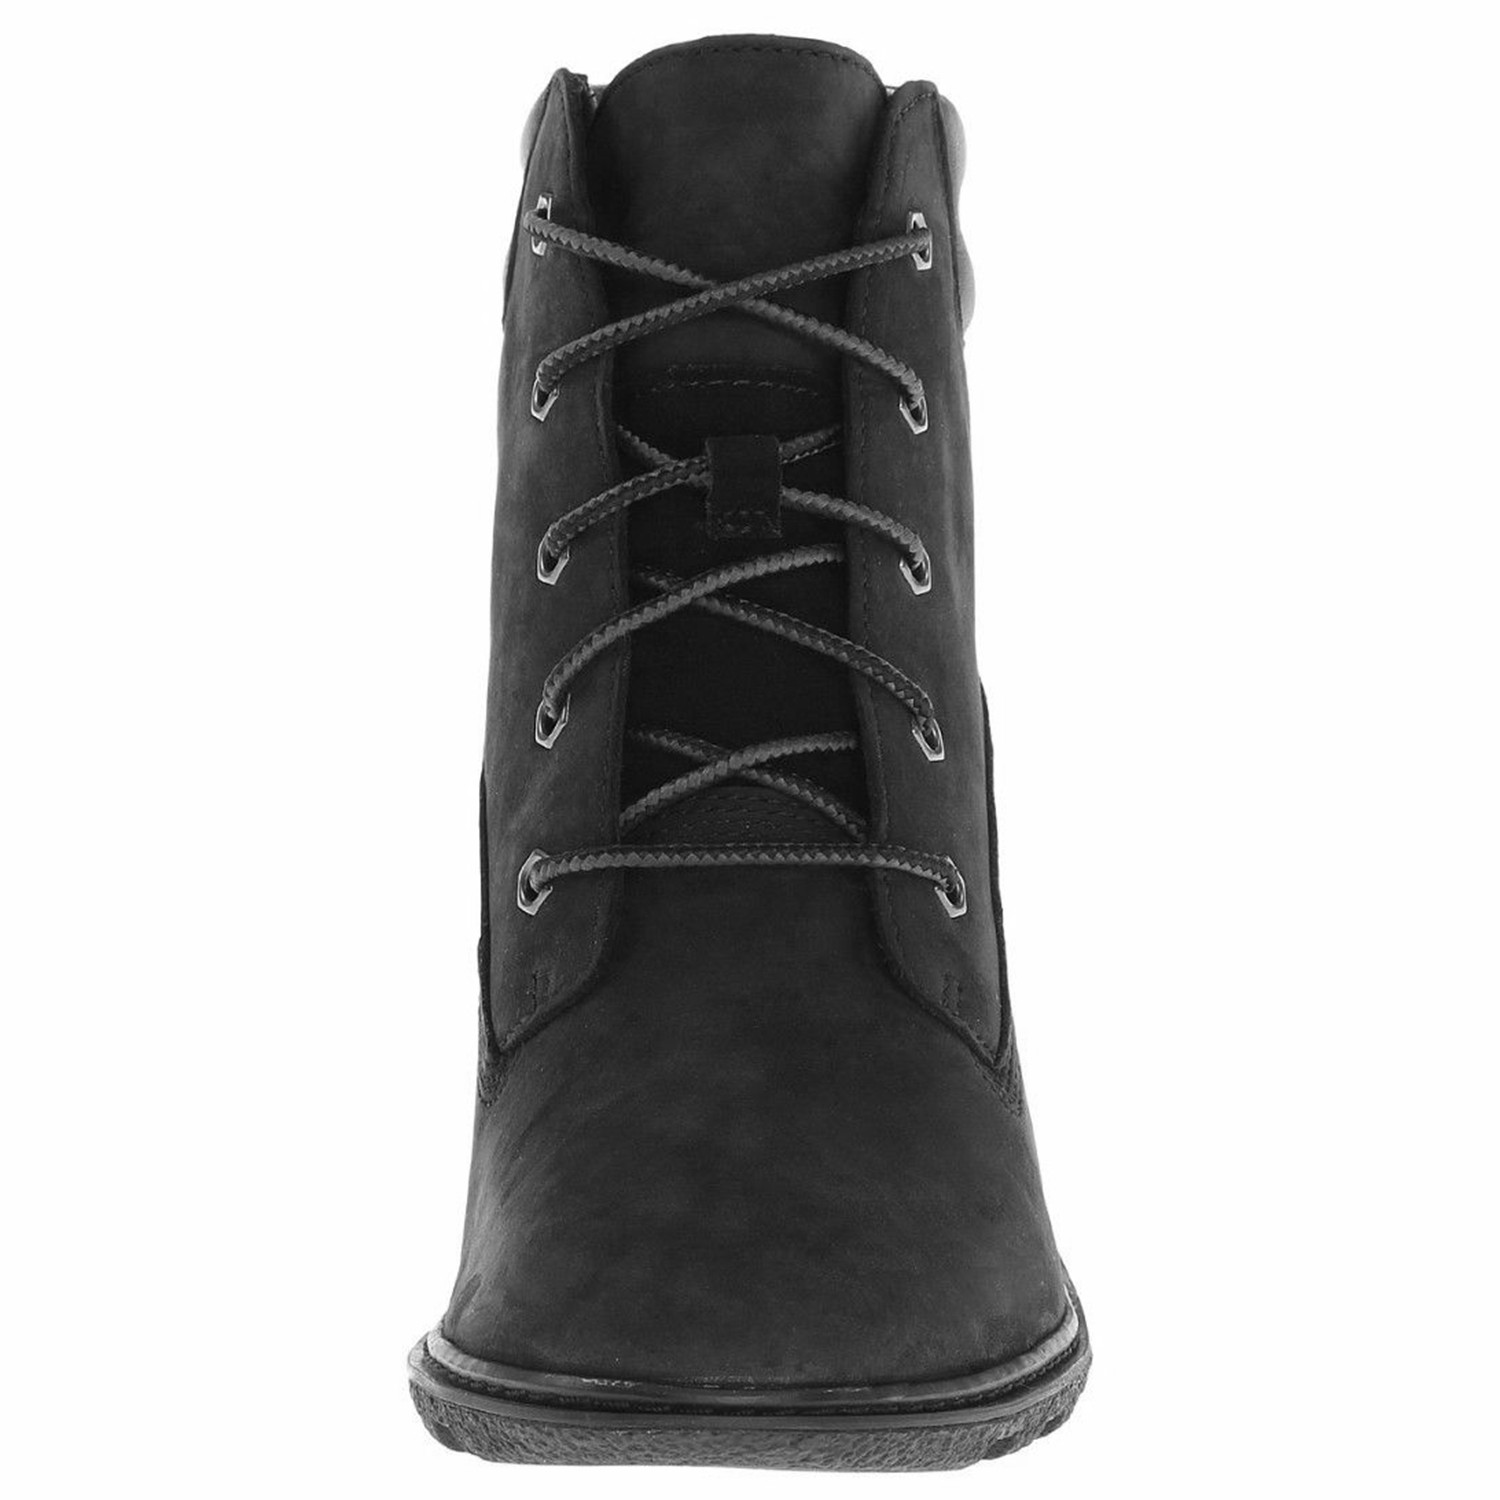 Bottines Femme Bottine Noir Cher Ek Pas 6in Amston Timberland qtwWxU8E